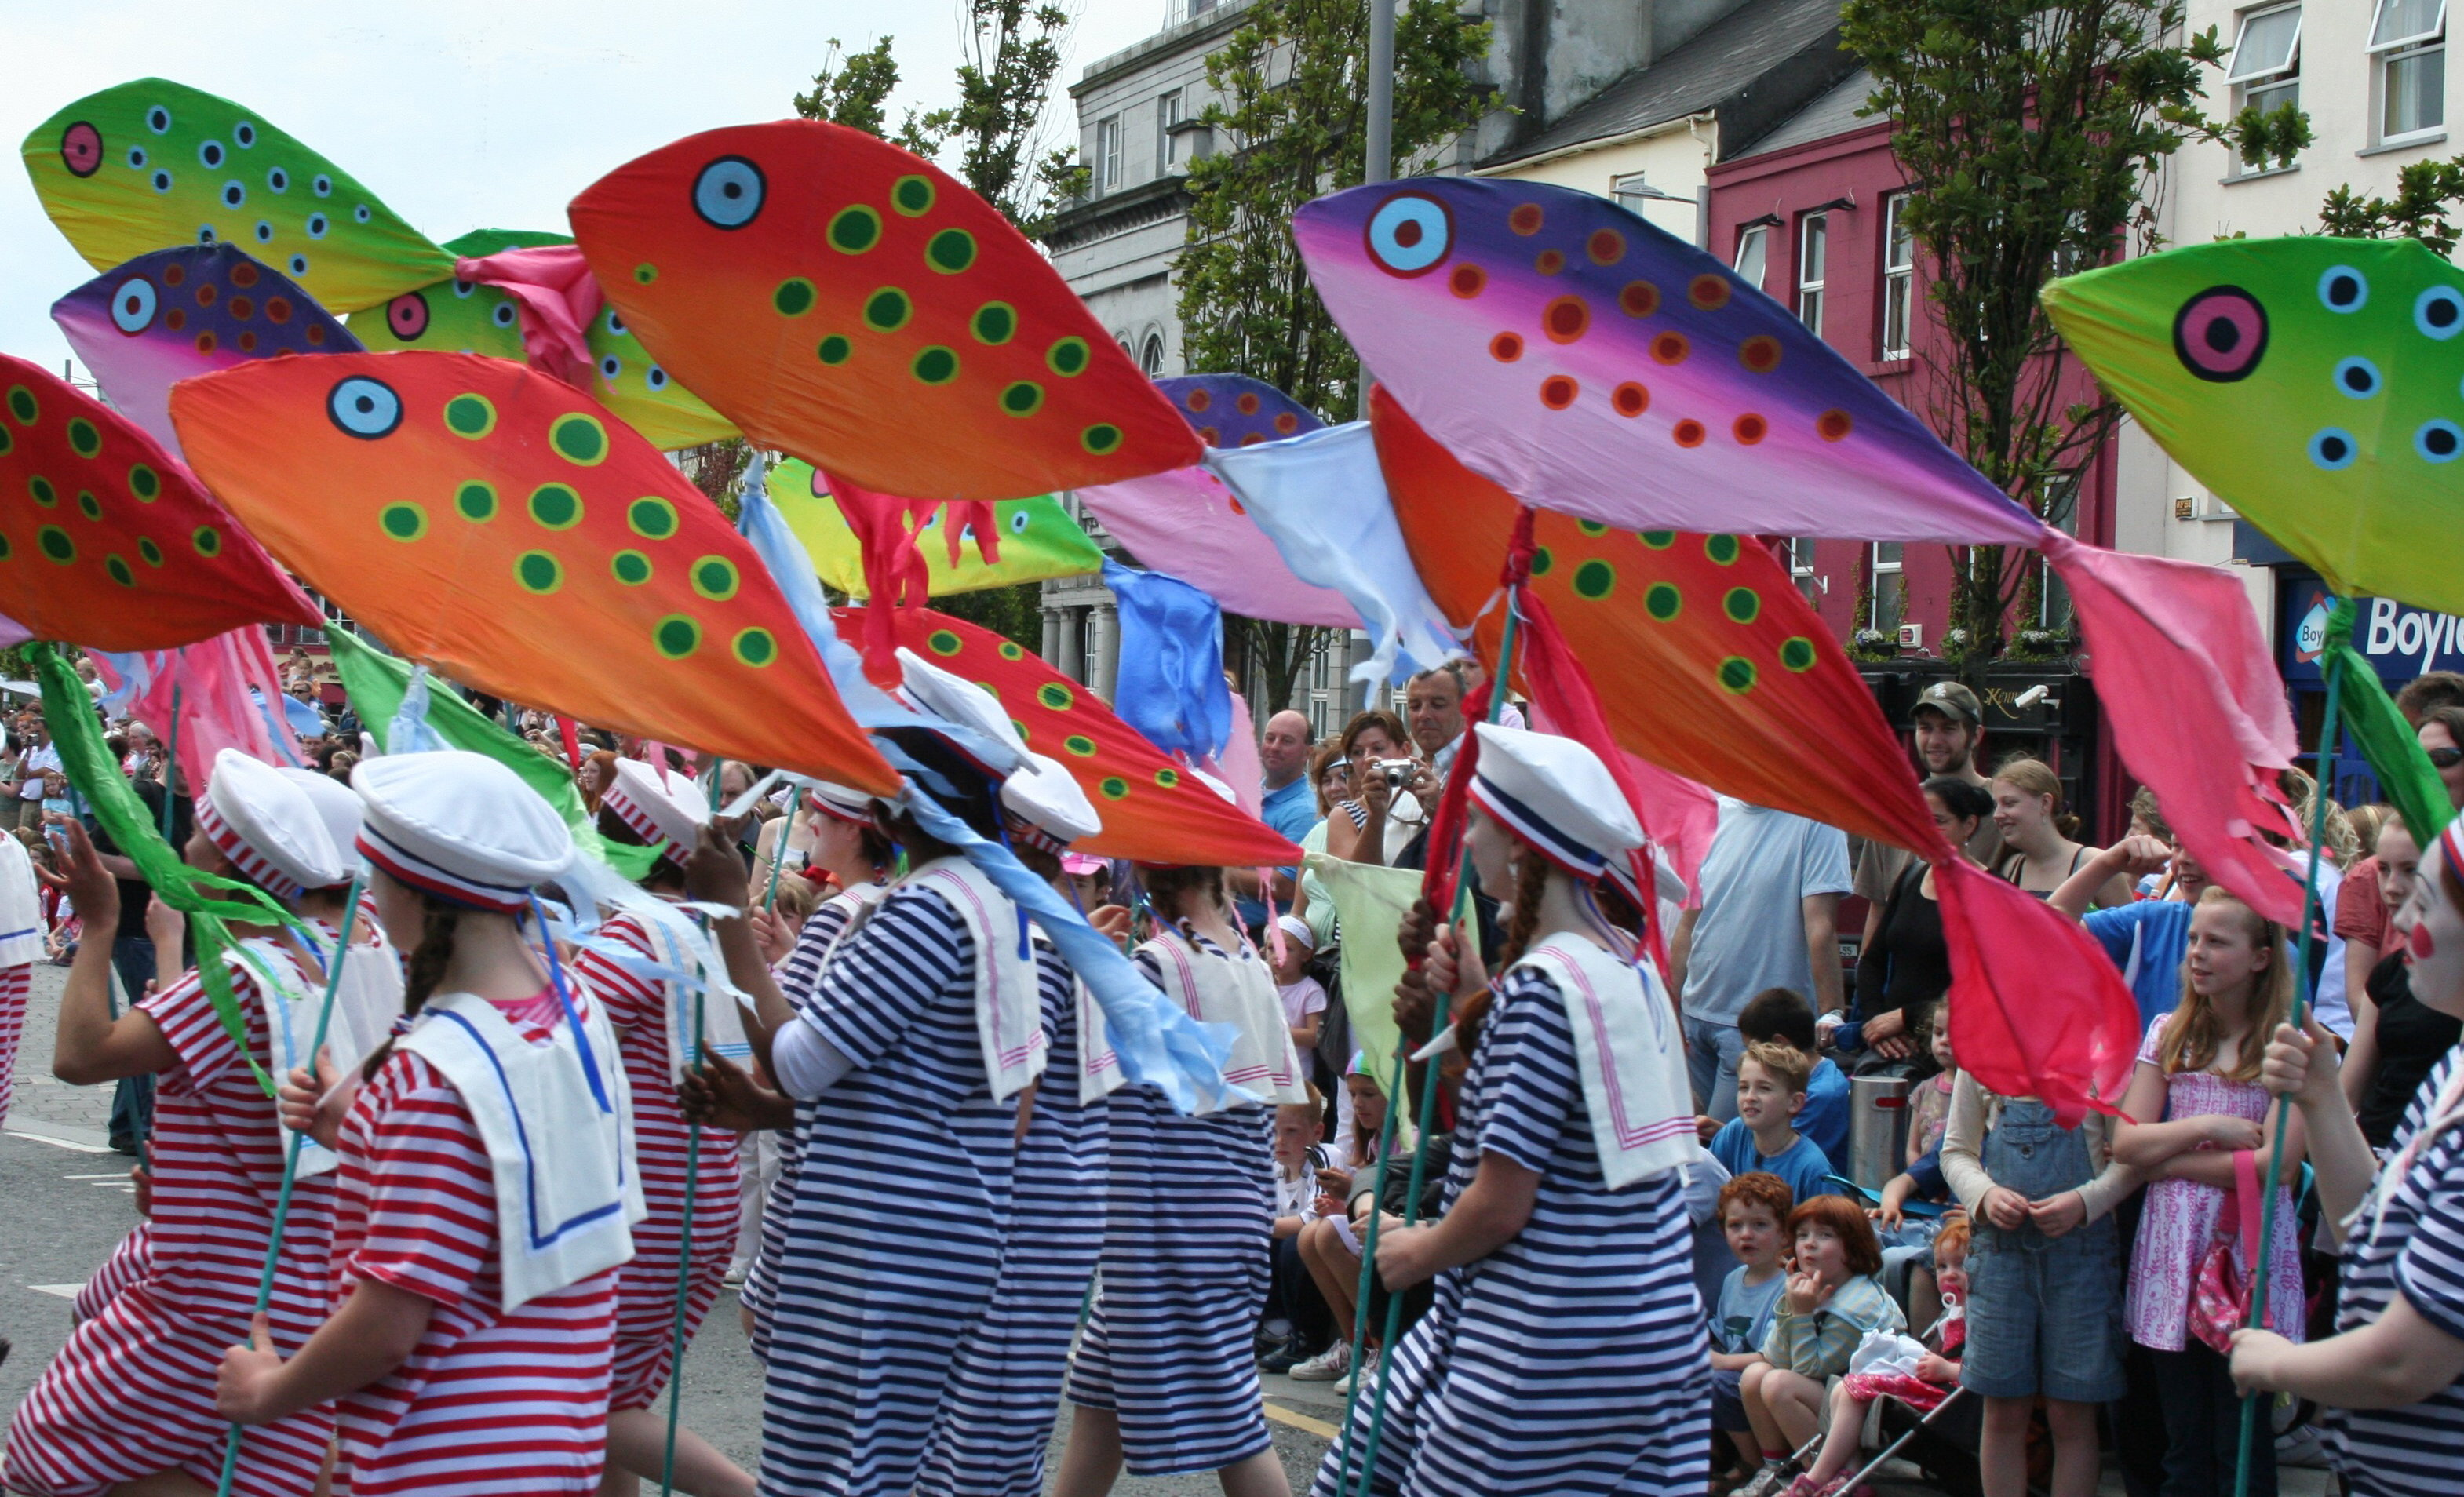 Fish_on_the_move_-_Galway_Arts_Festival_Parade